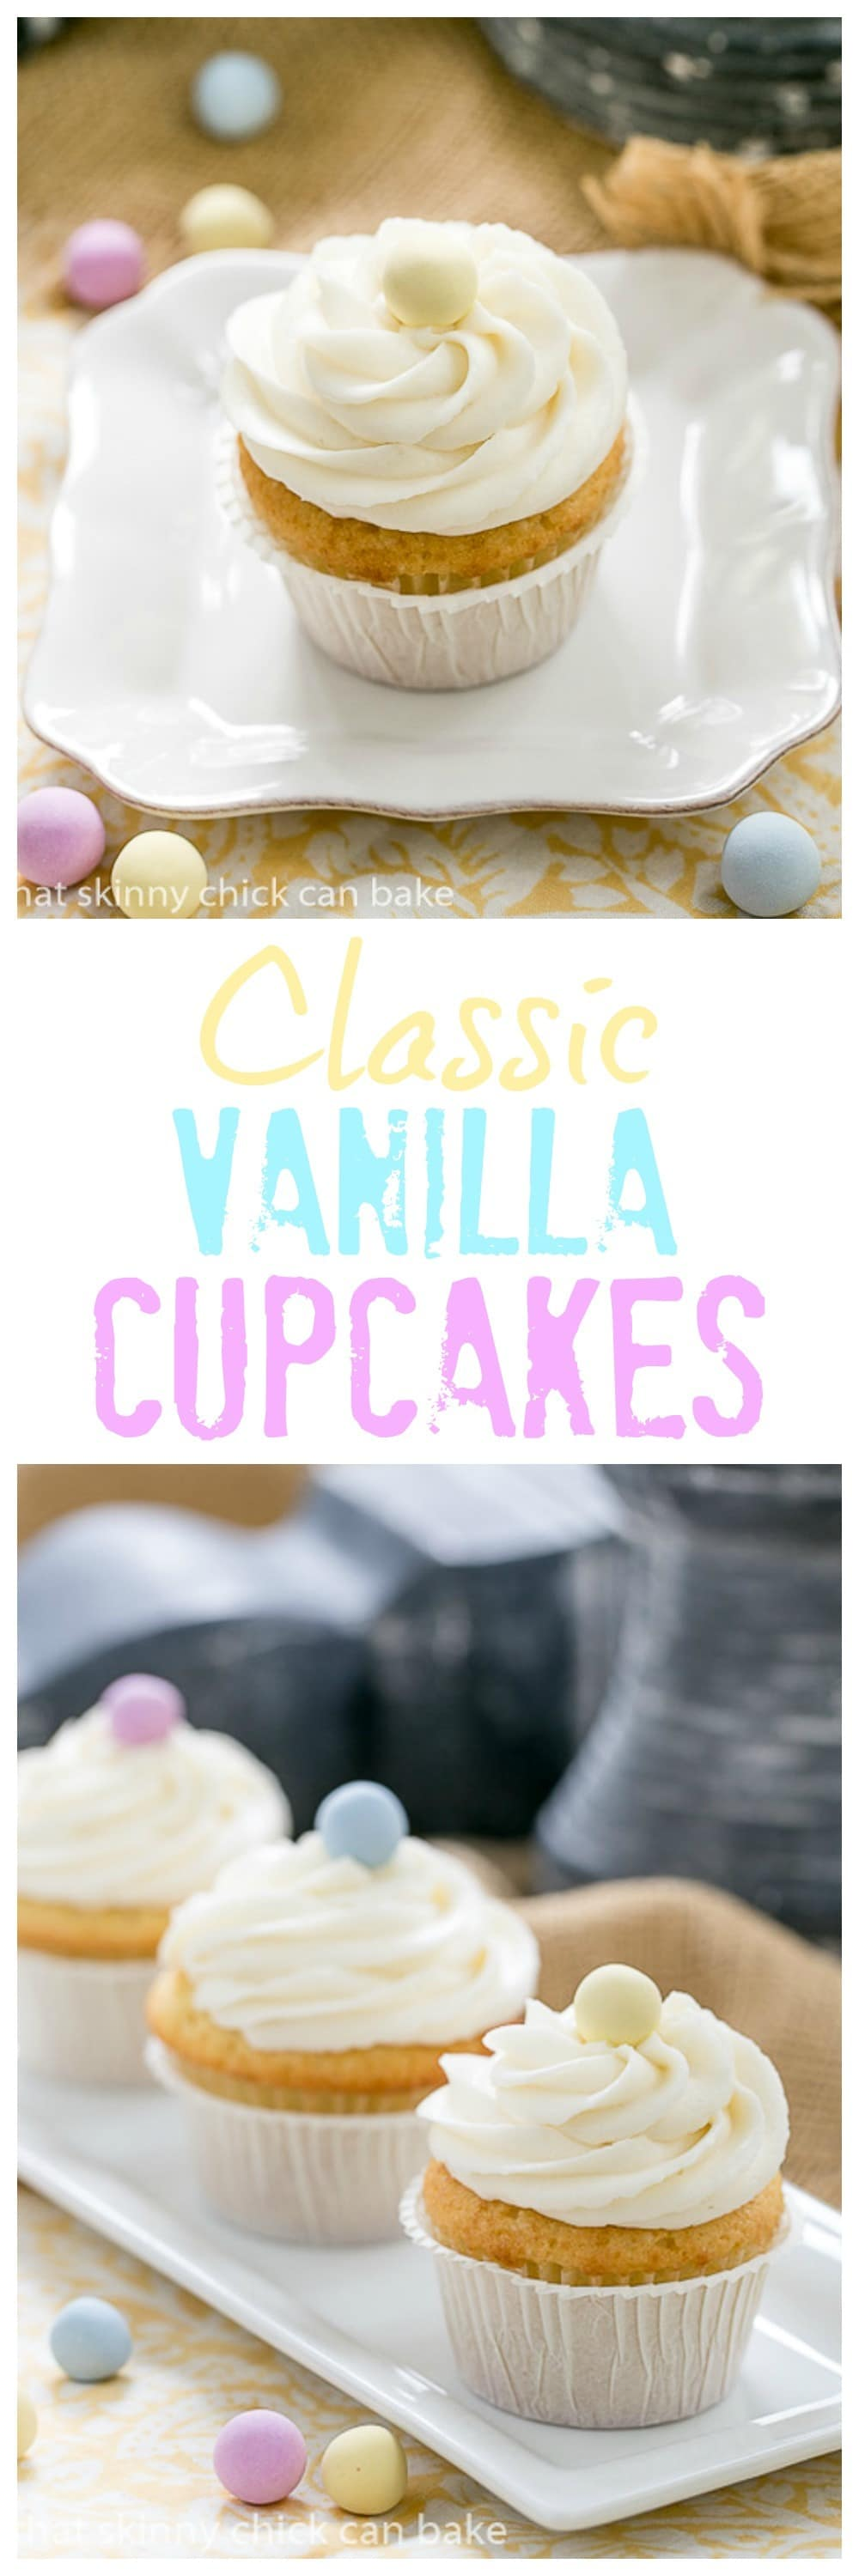 Buttercream Topped Vanilla Cupcakes collage for pinterest